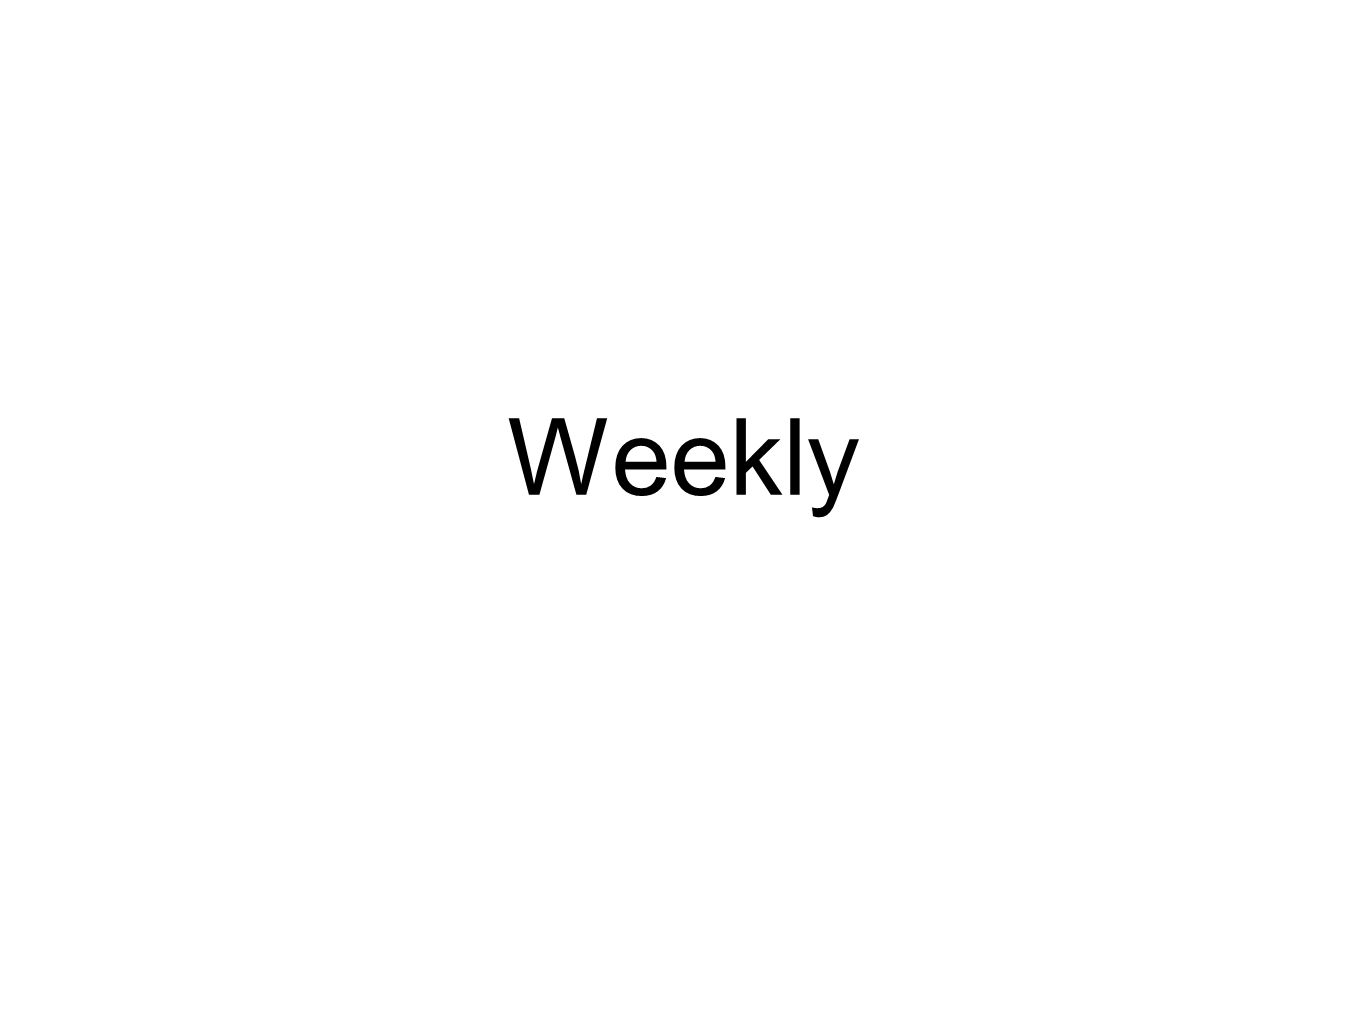 Weekly